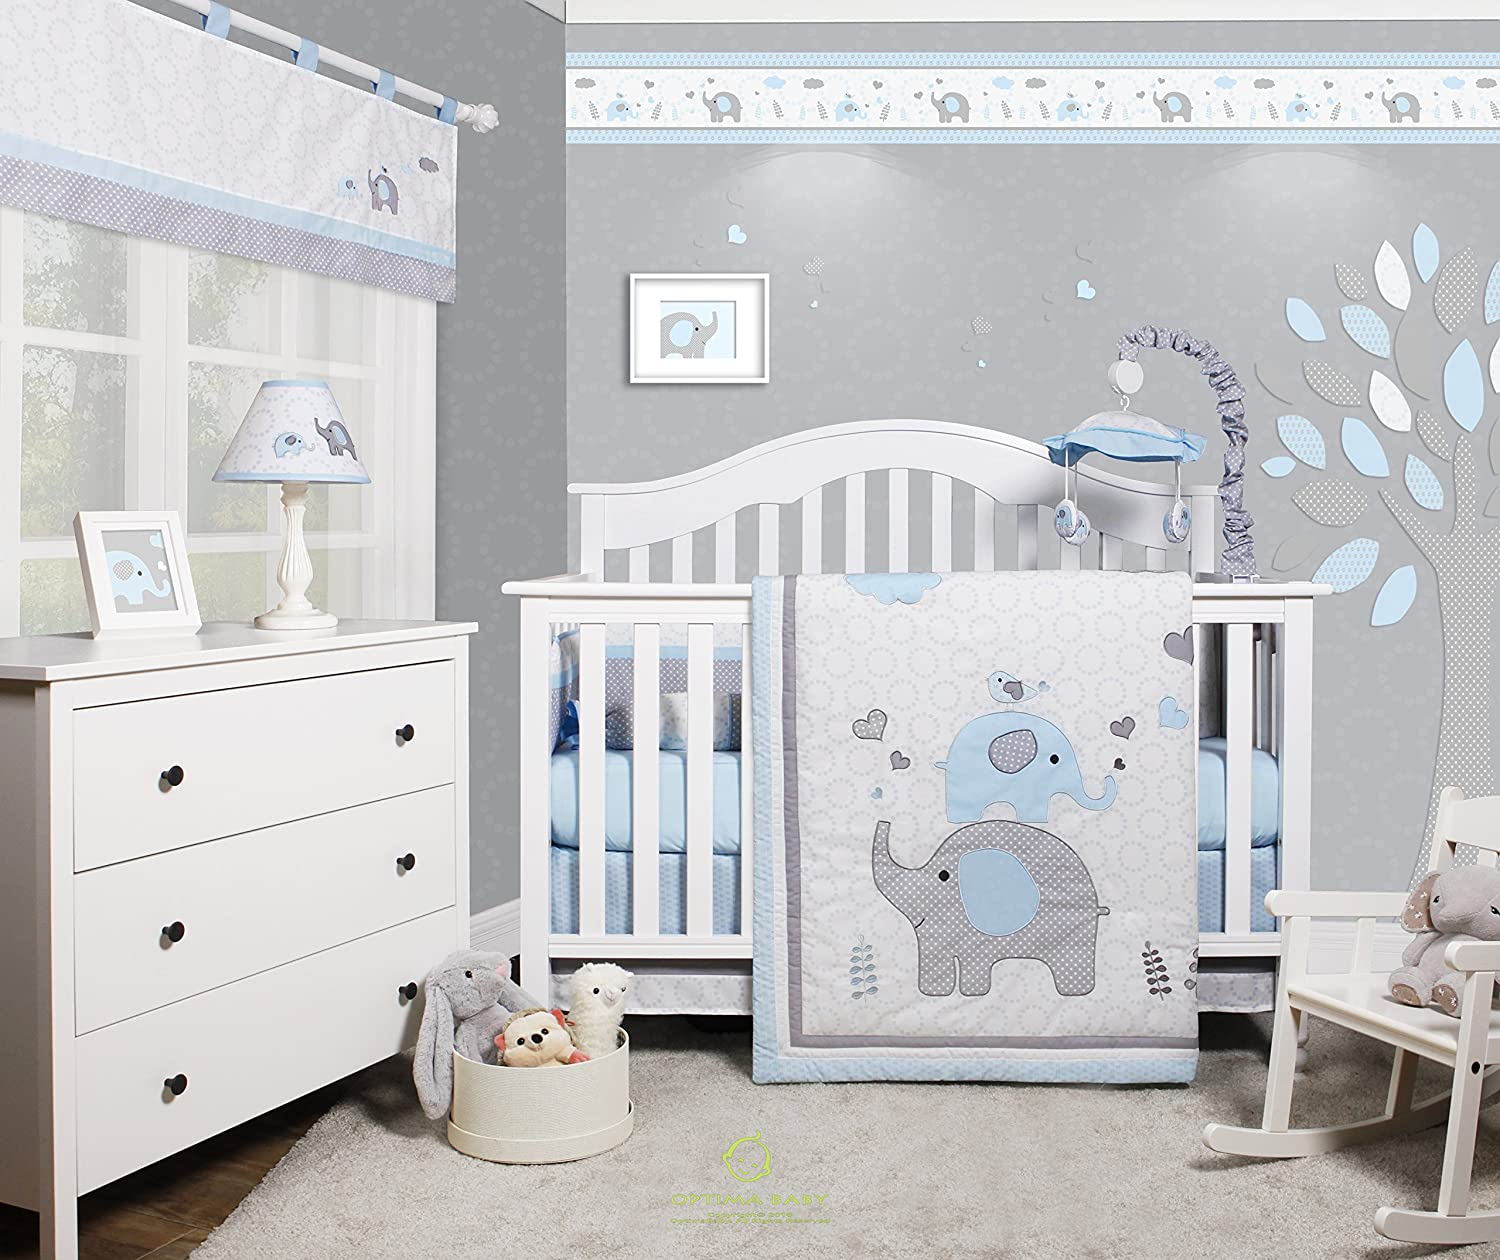 GEENNY OptimaBaby Blue Grey Elephant 27 Piece Baby Nursery Crib Bedding Set